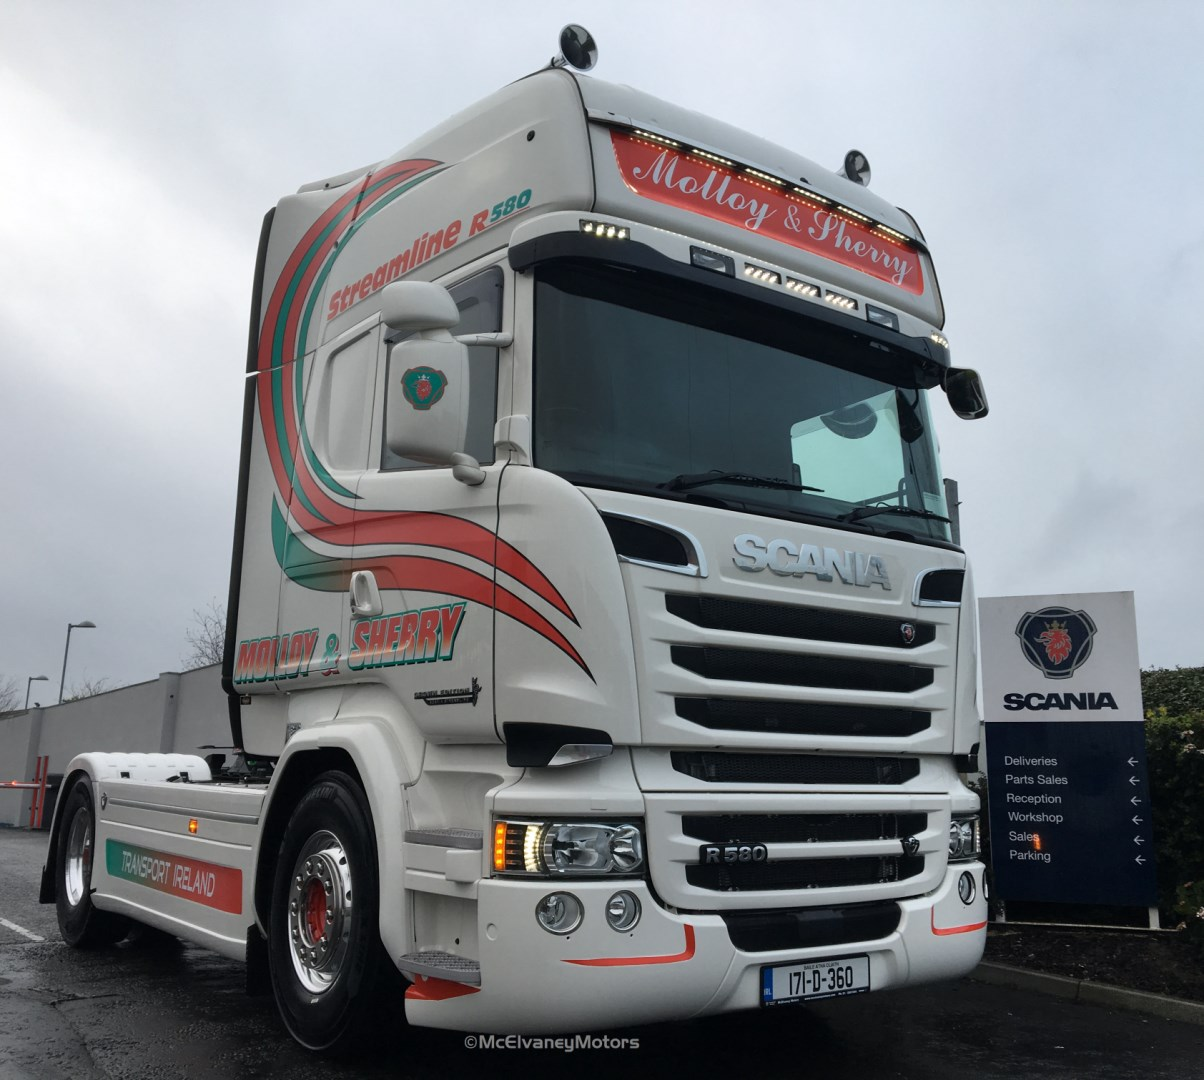 New R580 Crown Edition for Molloy & Sherry